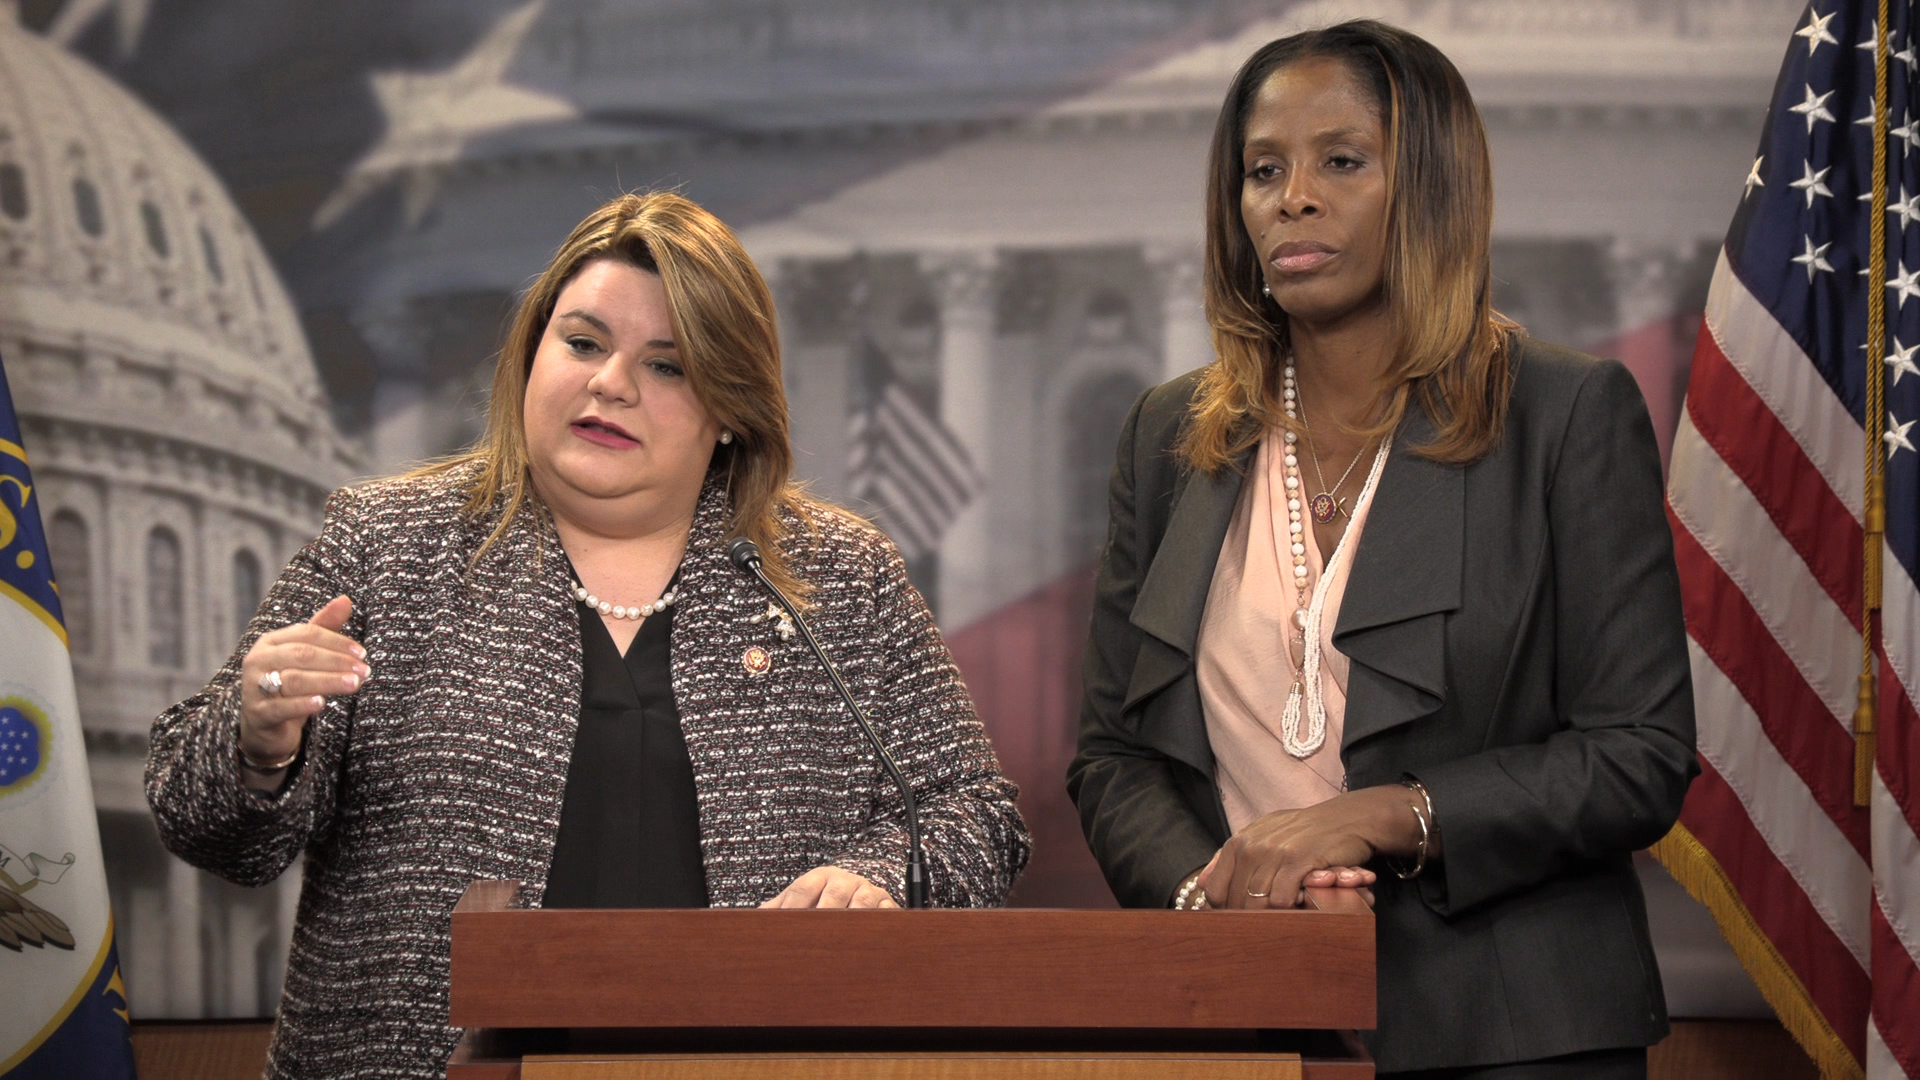 Plaskett, Gonzalez-Colon aim to lift Medicaid funding cap for U.S. territories